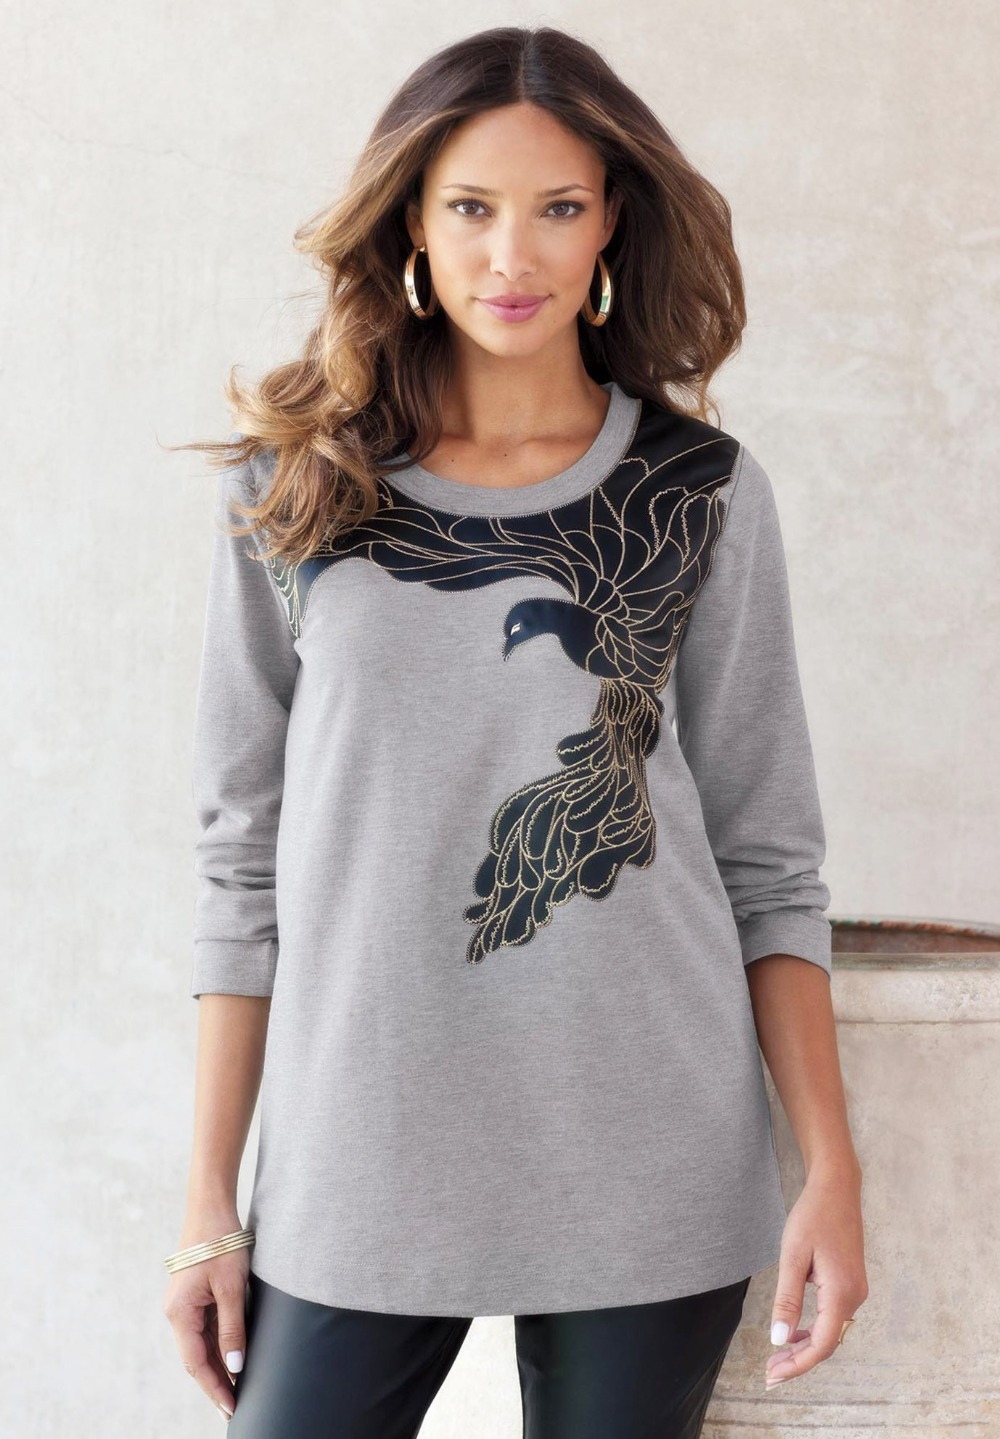 L 10XL Novelty Large Size Bird Applique Sweatshirt Jumper ...